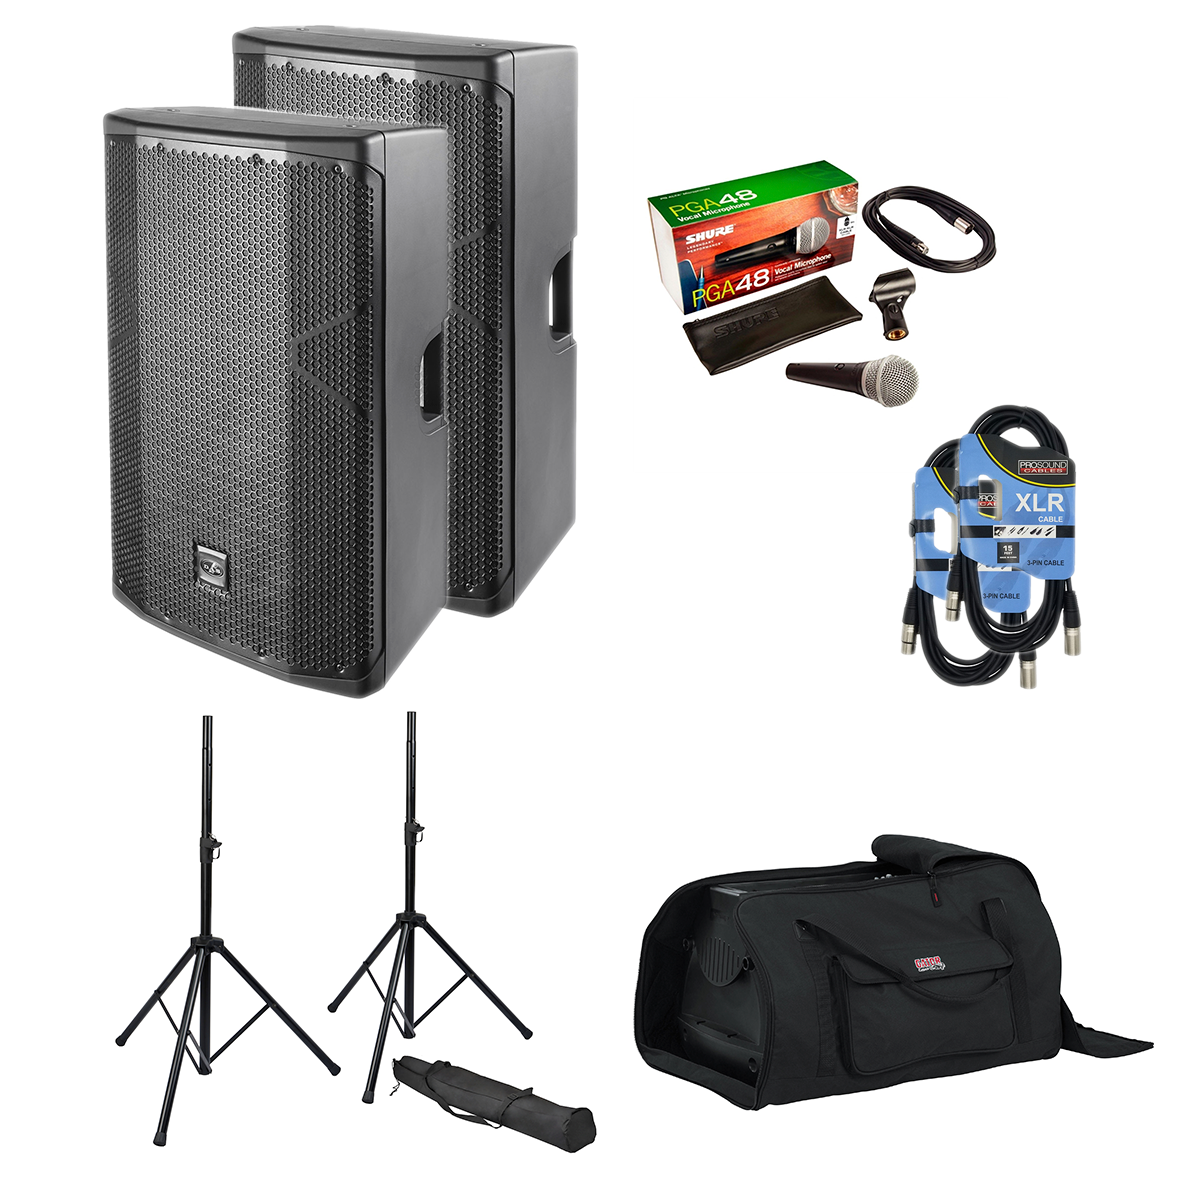 -4 DAS Altea 415A Pair - Speaker Stands - Gator Tote15 2 - XLR Cables 2 - PG48 Mic - 1099.99